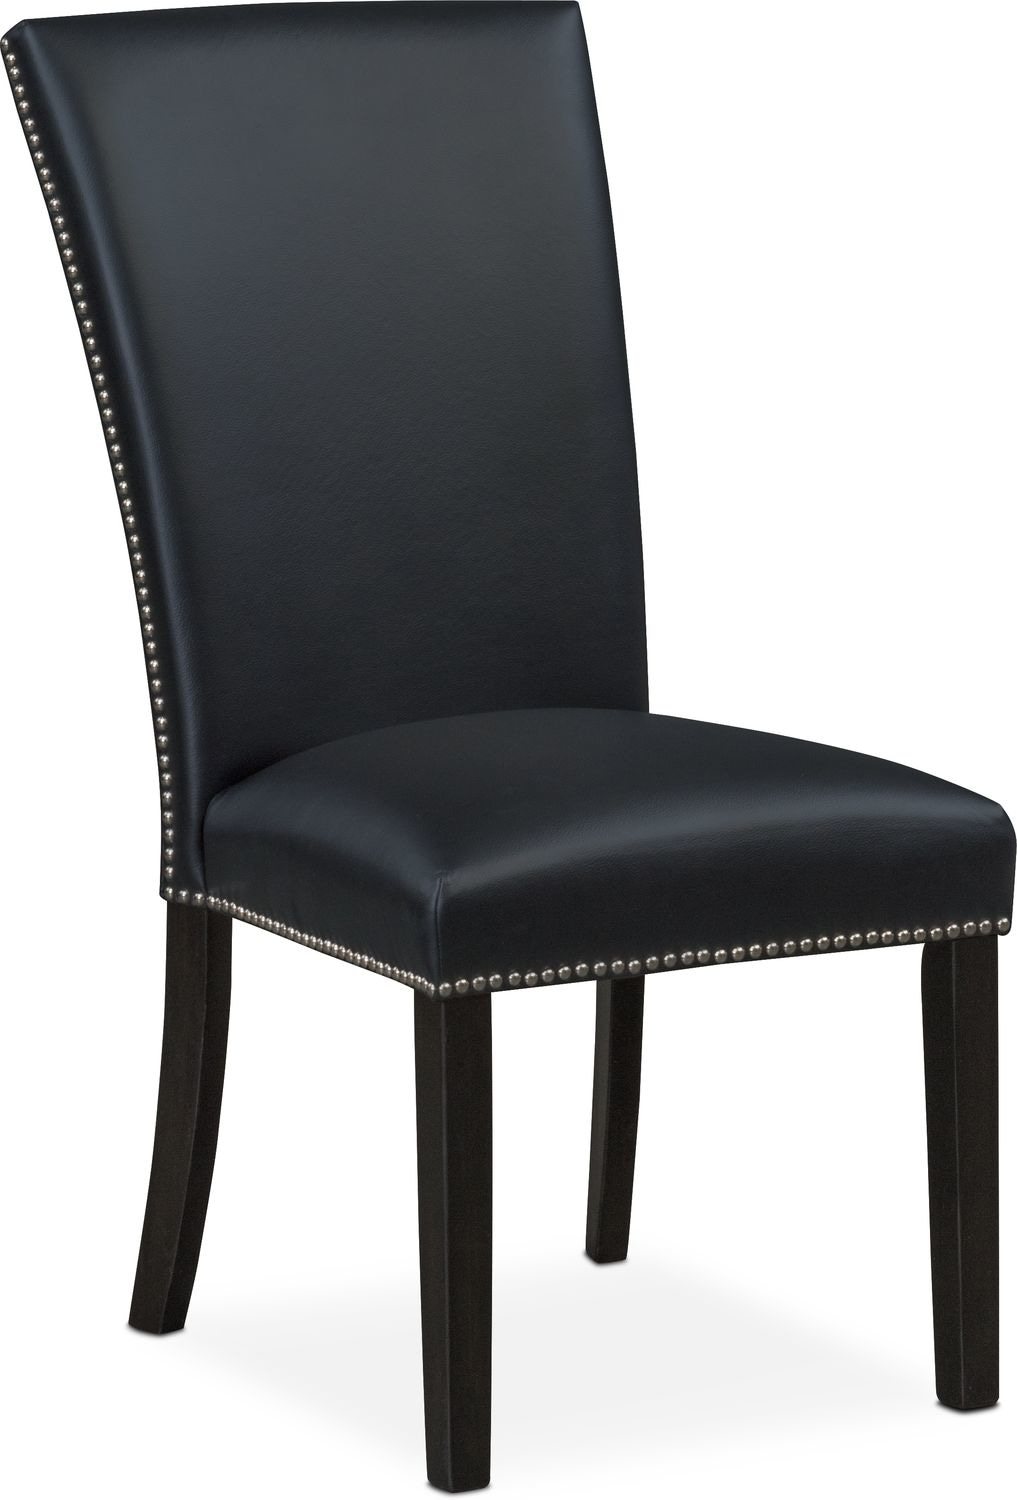 Artemis Side Chair - Black | Value City Furniture and Mattresses